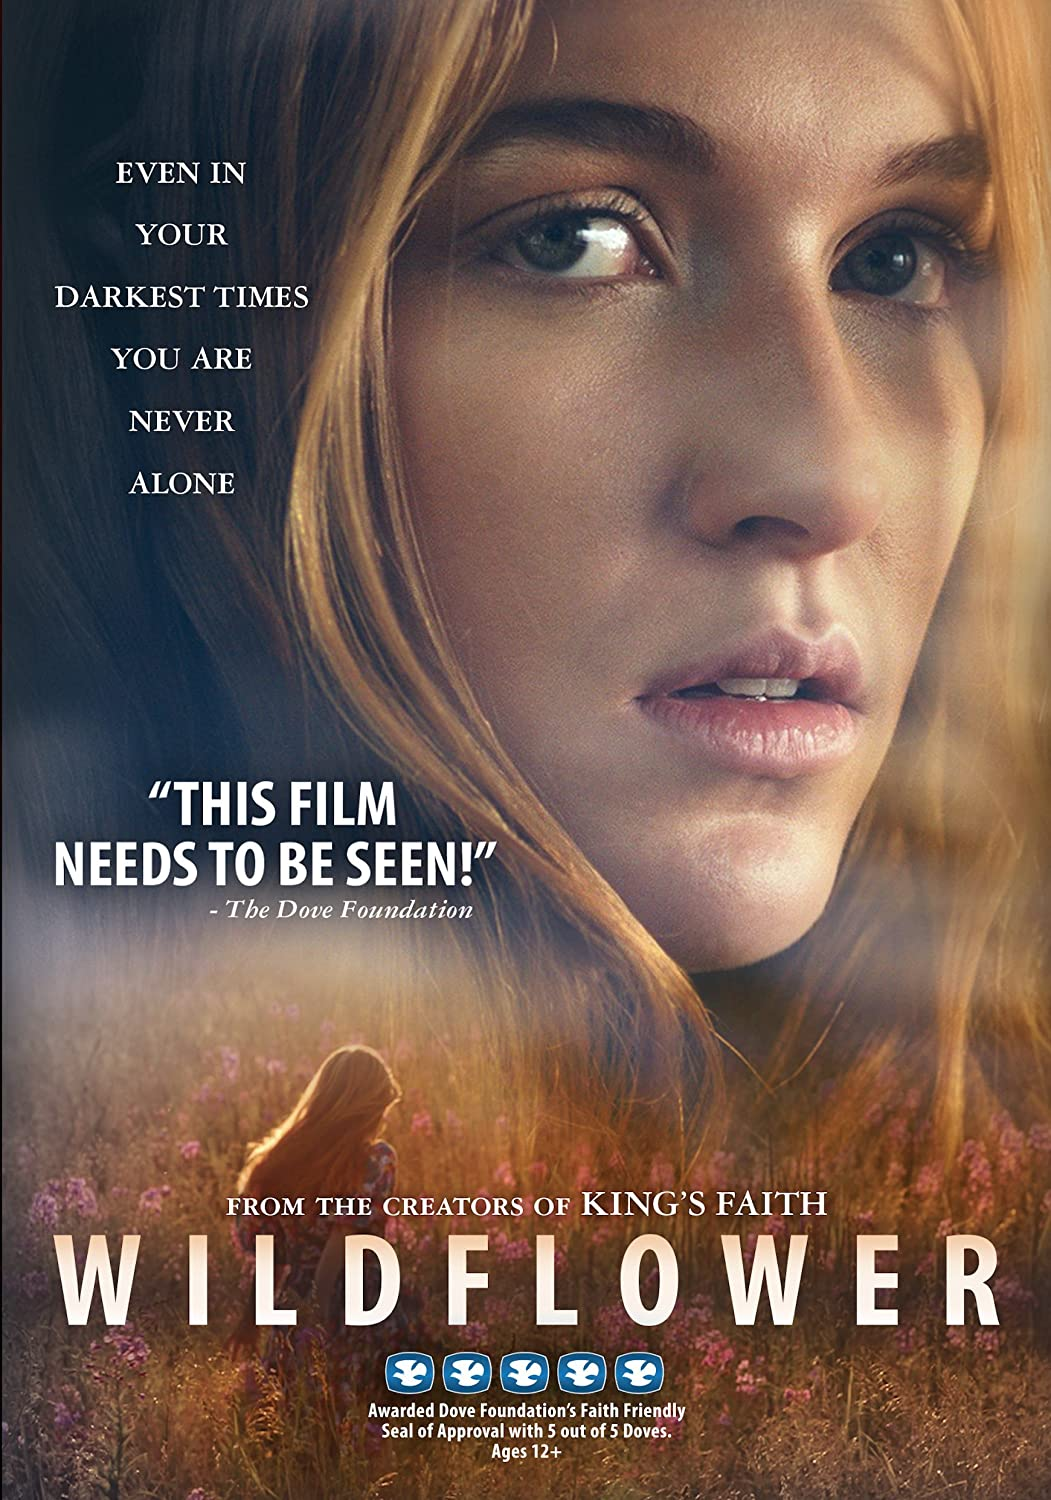 wildflower - DVD image